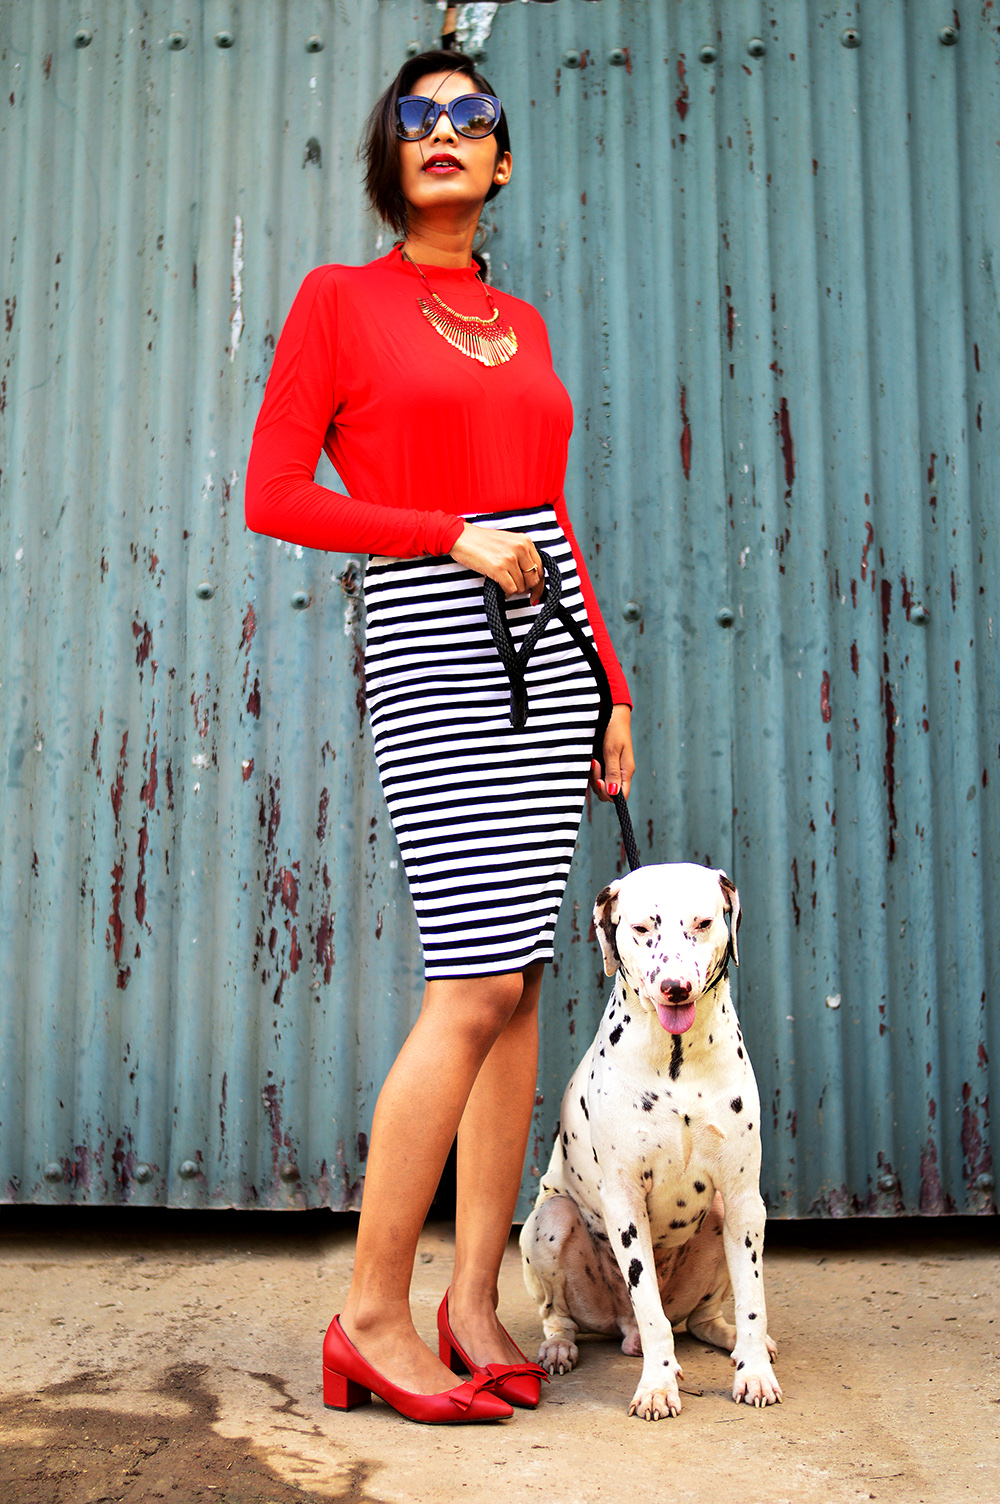 Fashion, Style, Fashion photography, Street Style, Fashion Blogger, Striped Pencil Skirt, Fashion Photo with animals, Red Blouse-6